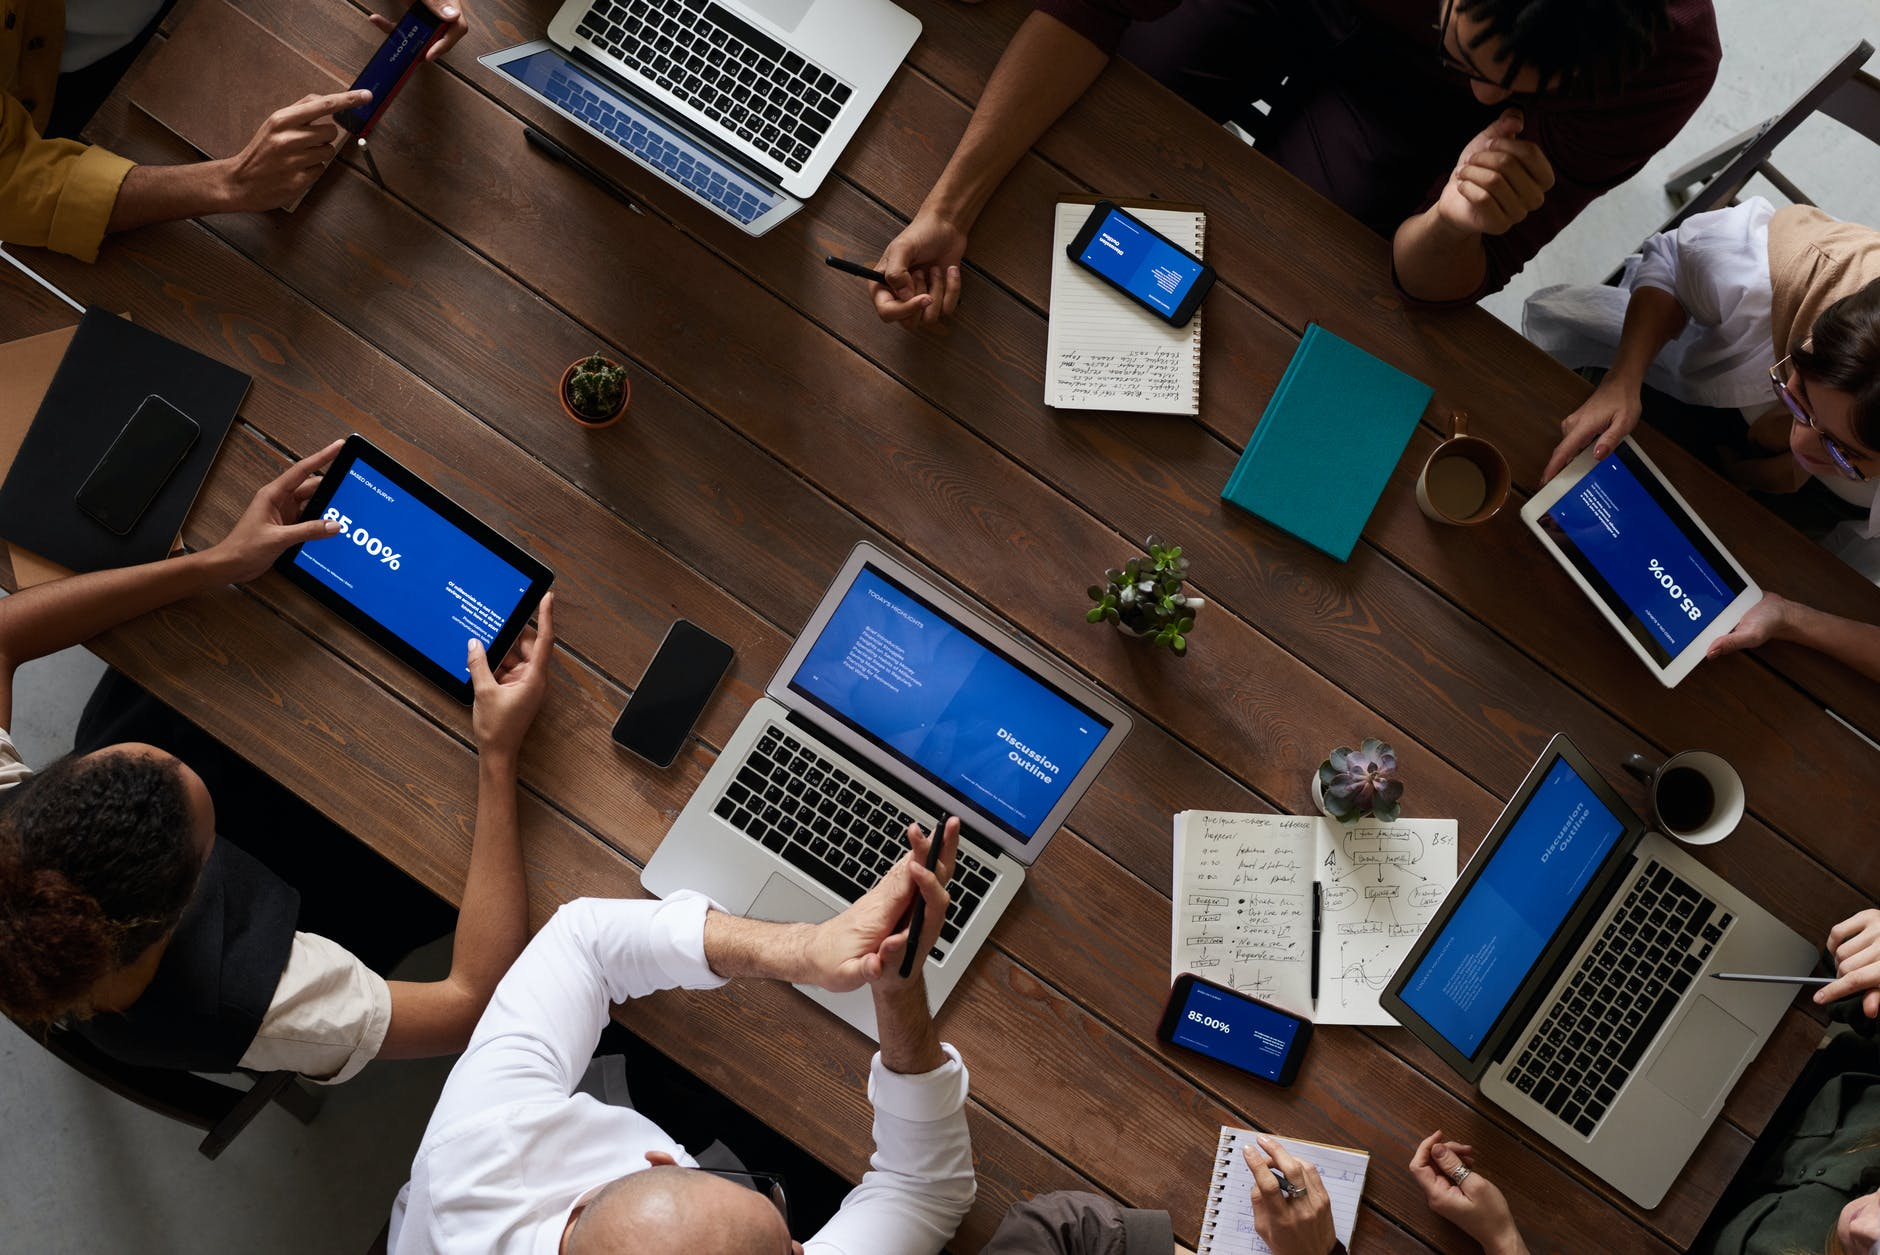 birds-eye-view-of-colleagues-at-a-desk